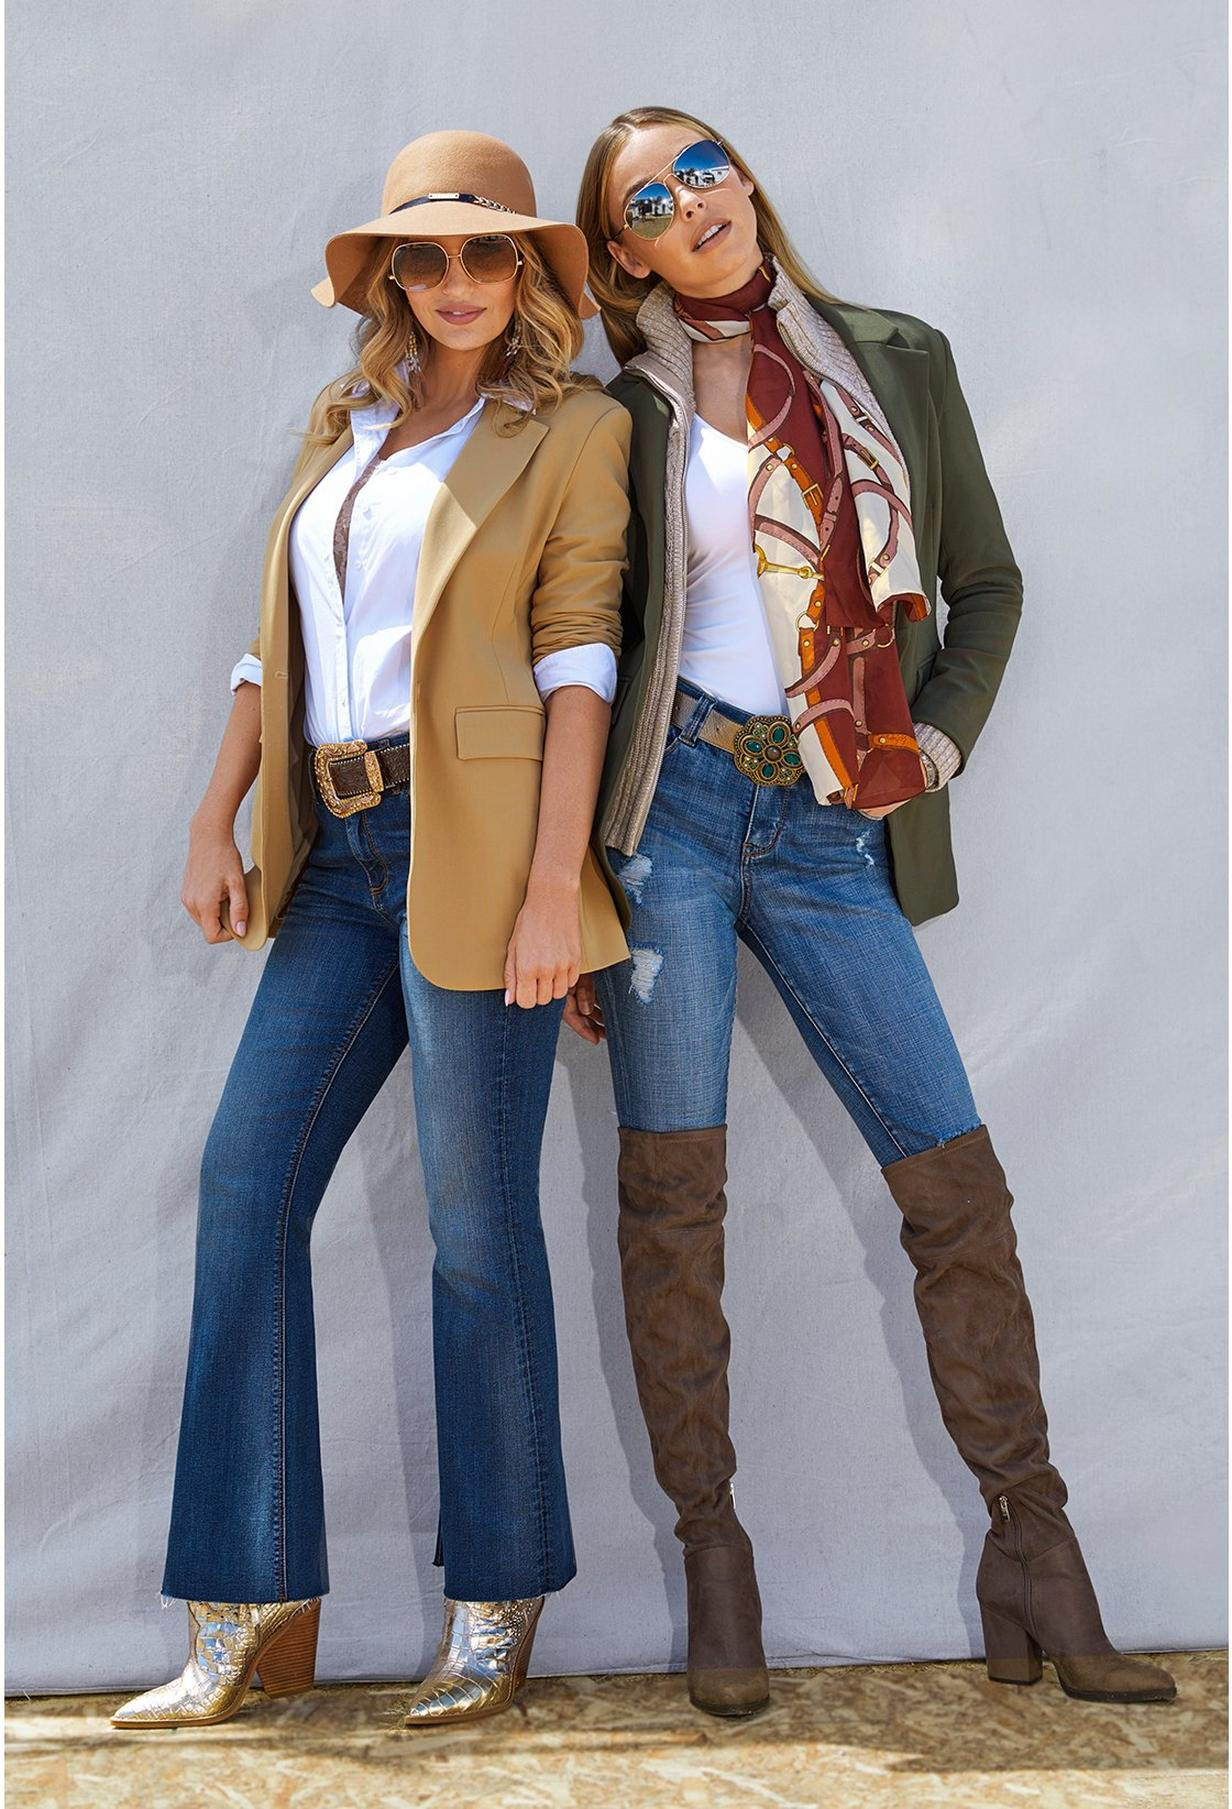 two women wearing blazers, poplin shirts, jeans, and boots